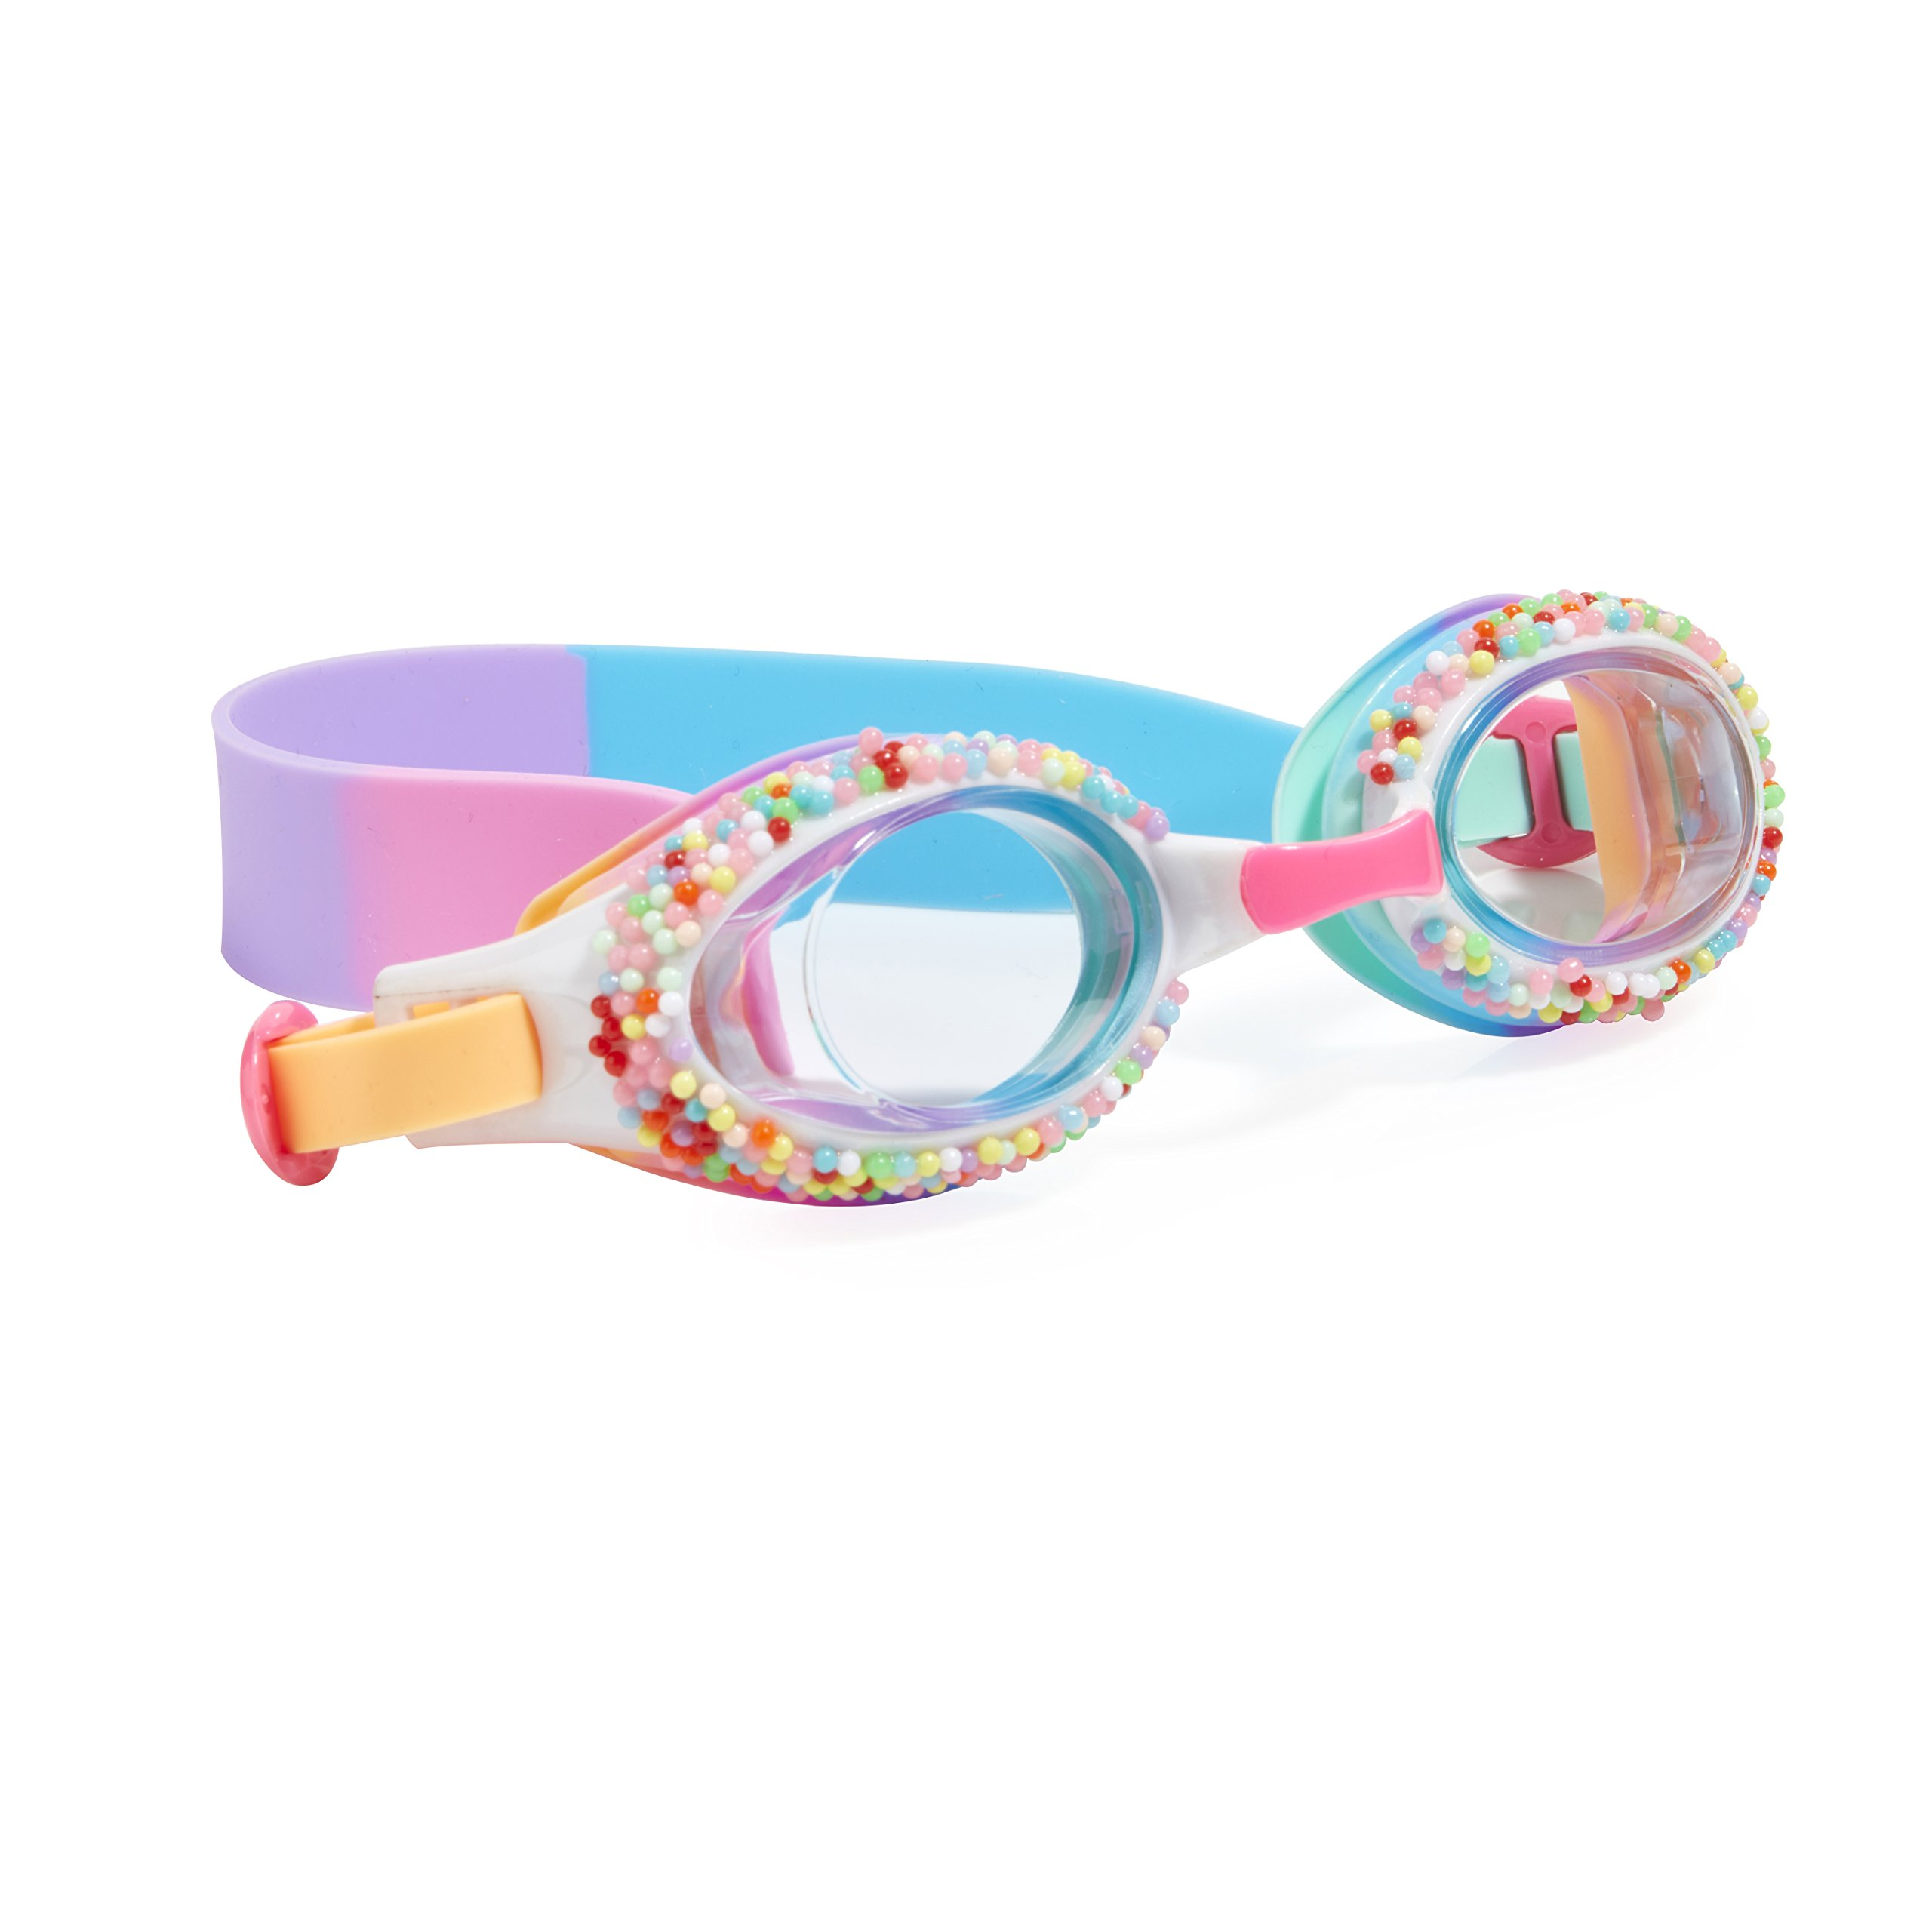 Swimming Goggles For Kids by Bling2O - Anti Fog, No Leak, Non Slip and UV Protection - Plunge Pink&Purple Colored Fun Water Accessory Includes Hard Case